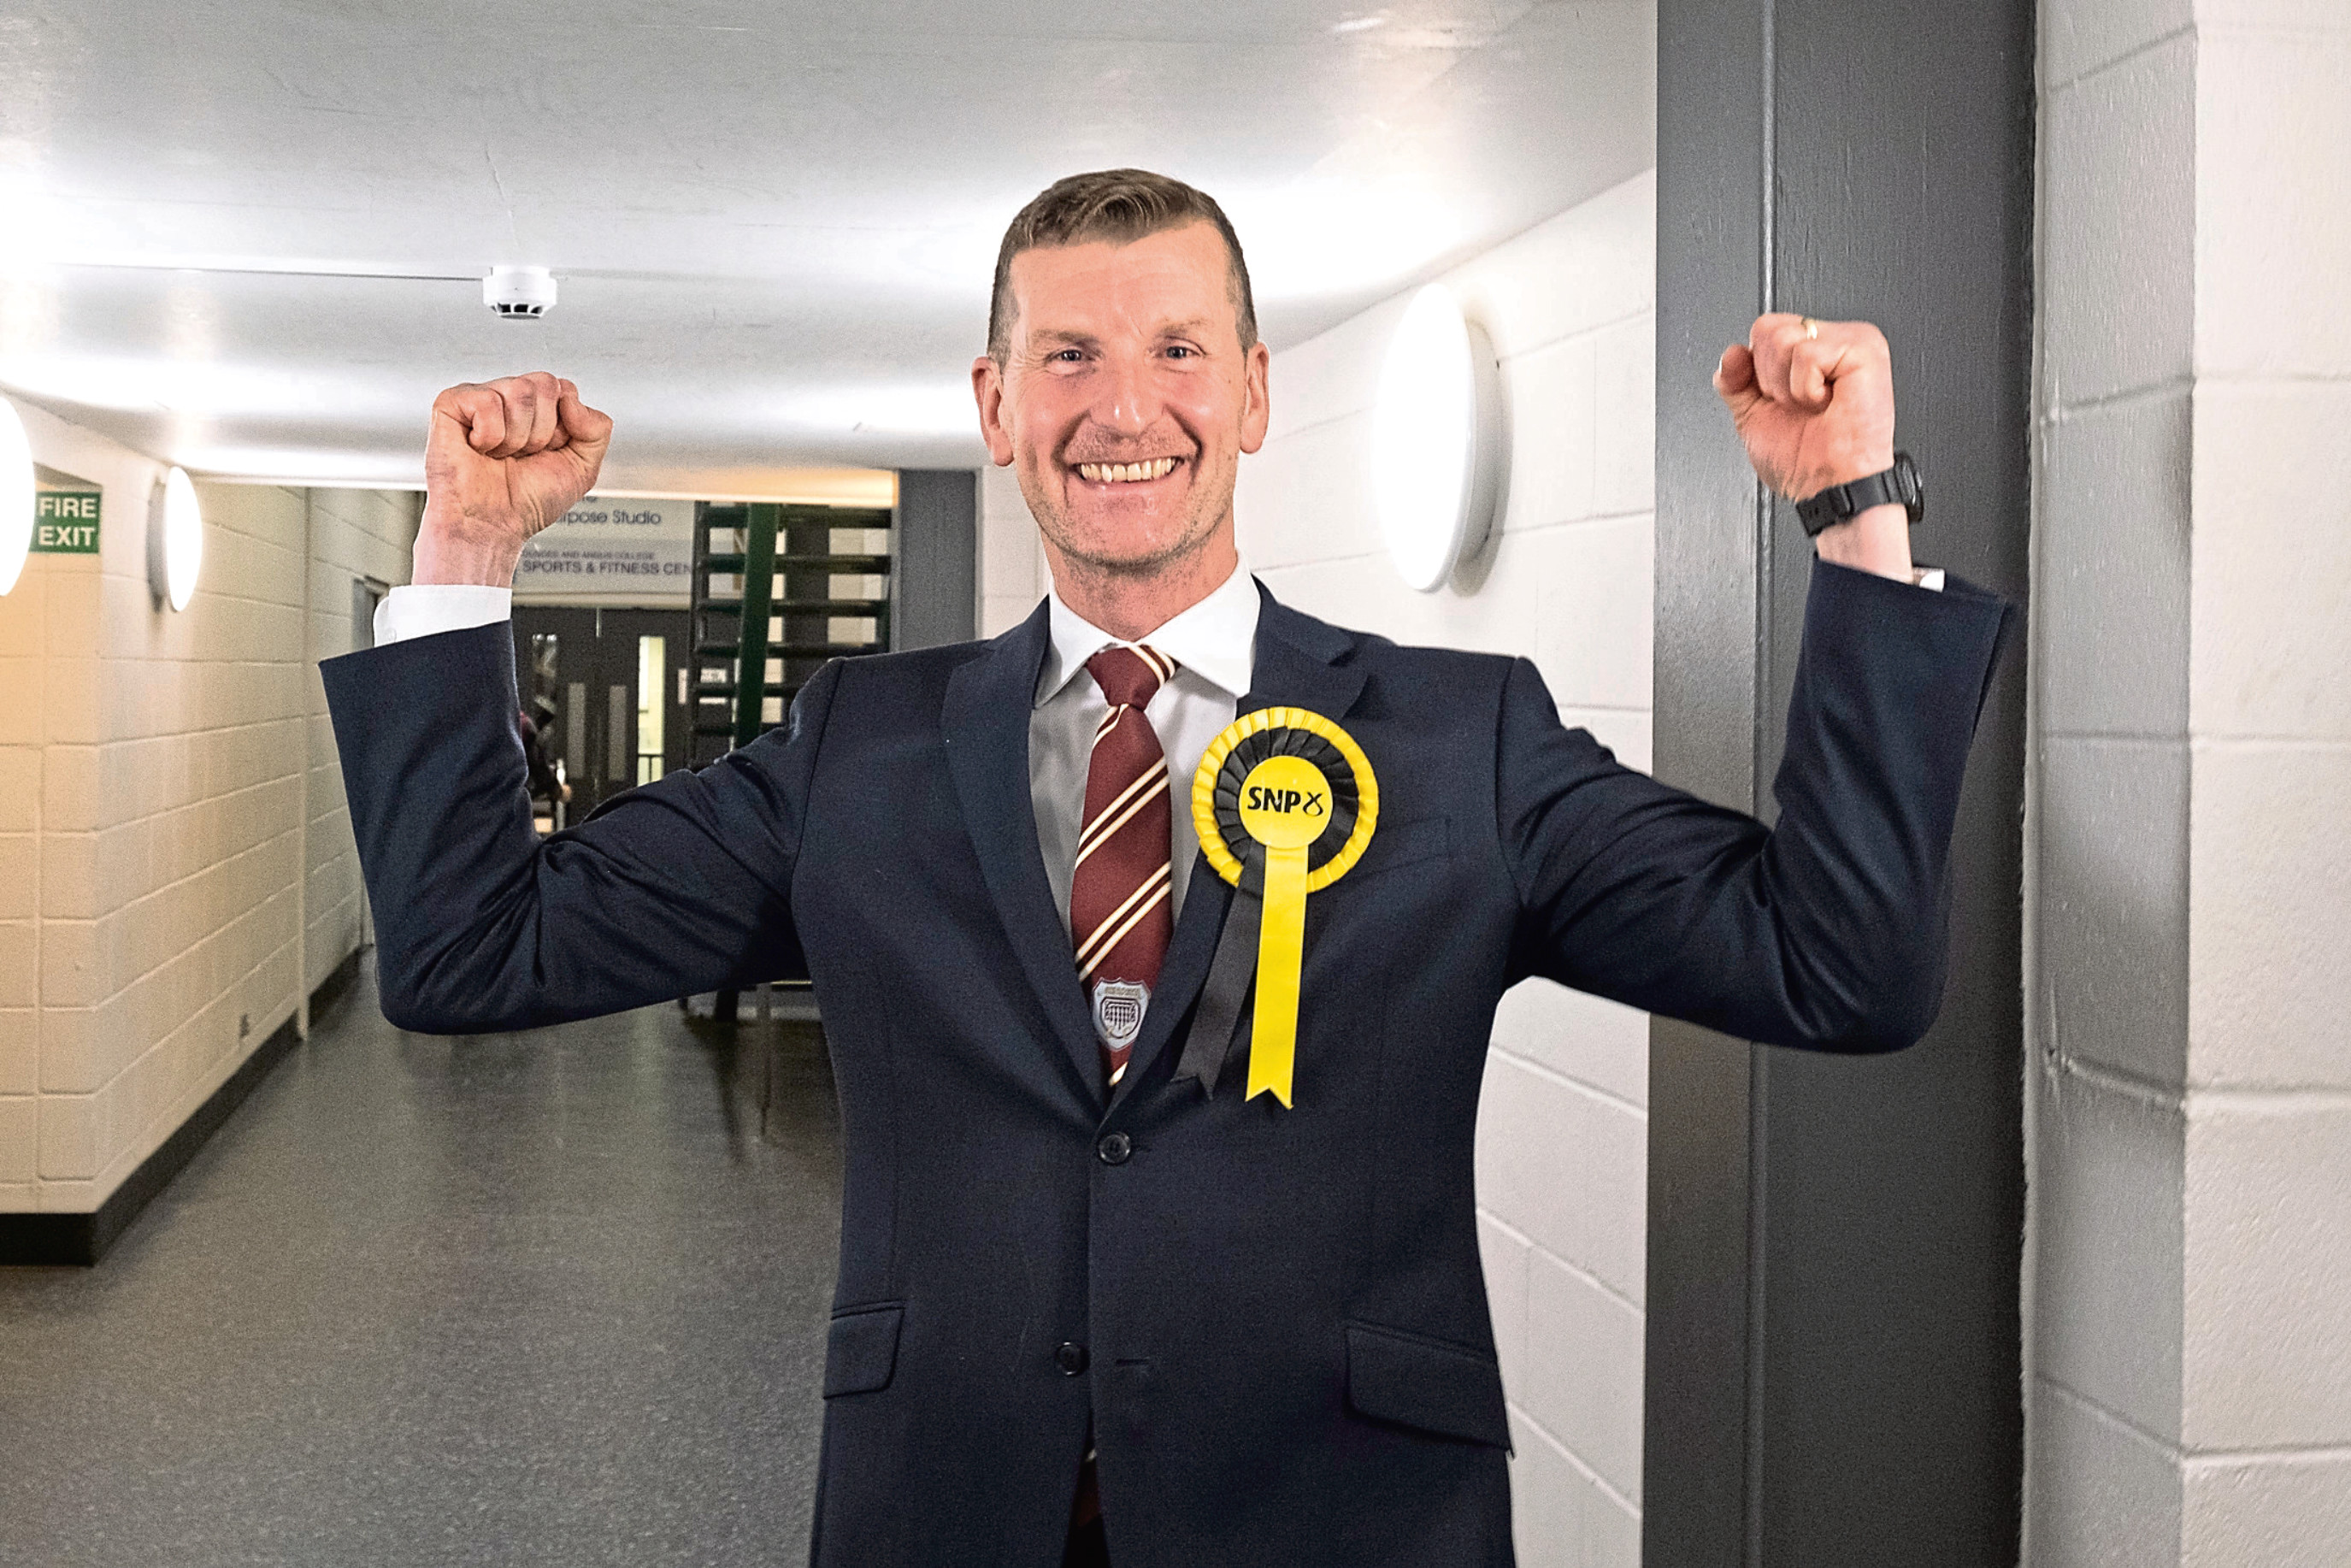 Doogan celebrating his victory at the Angus count.